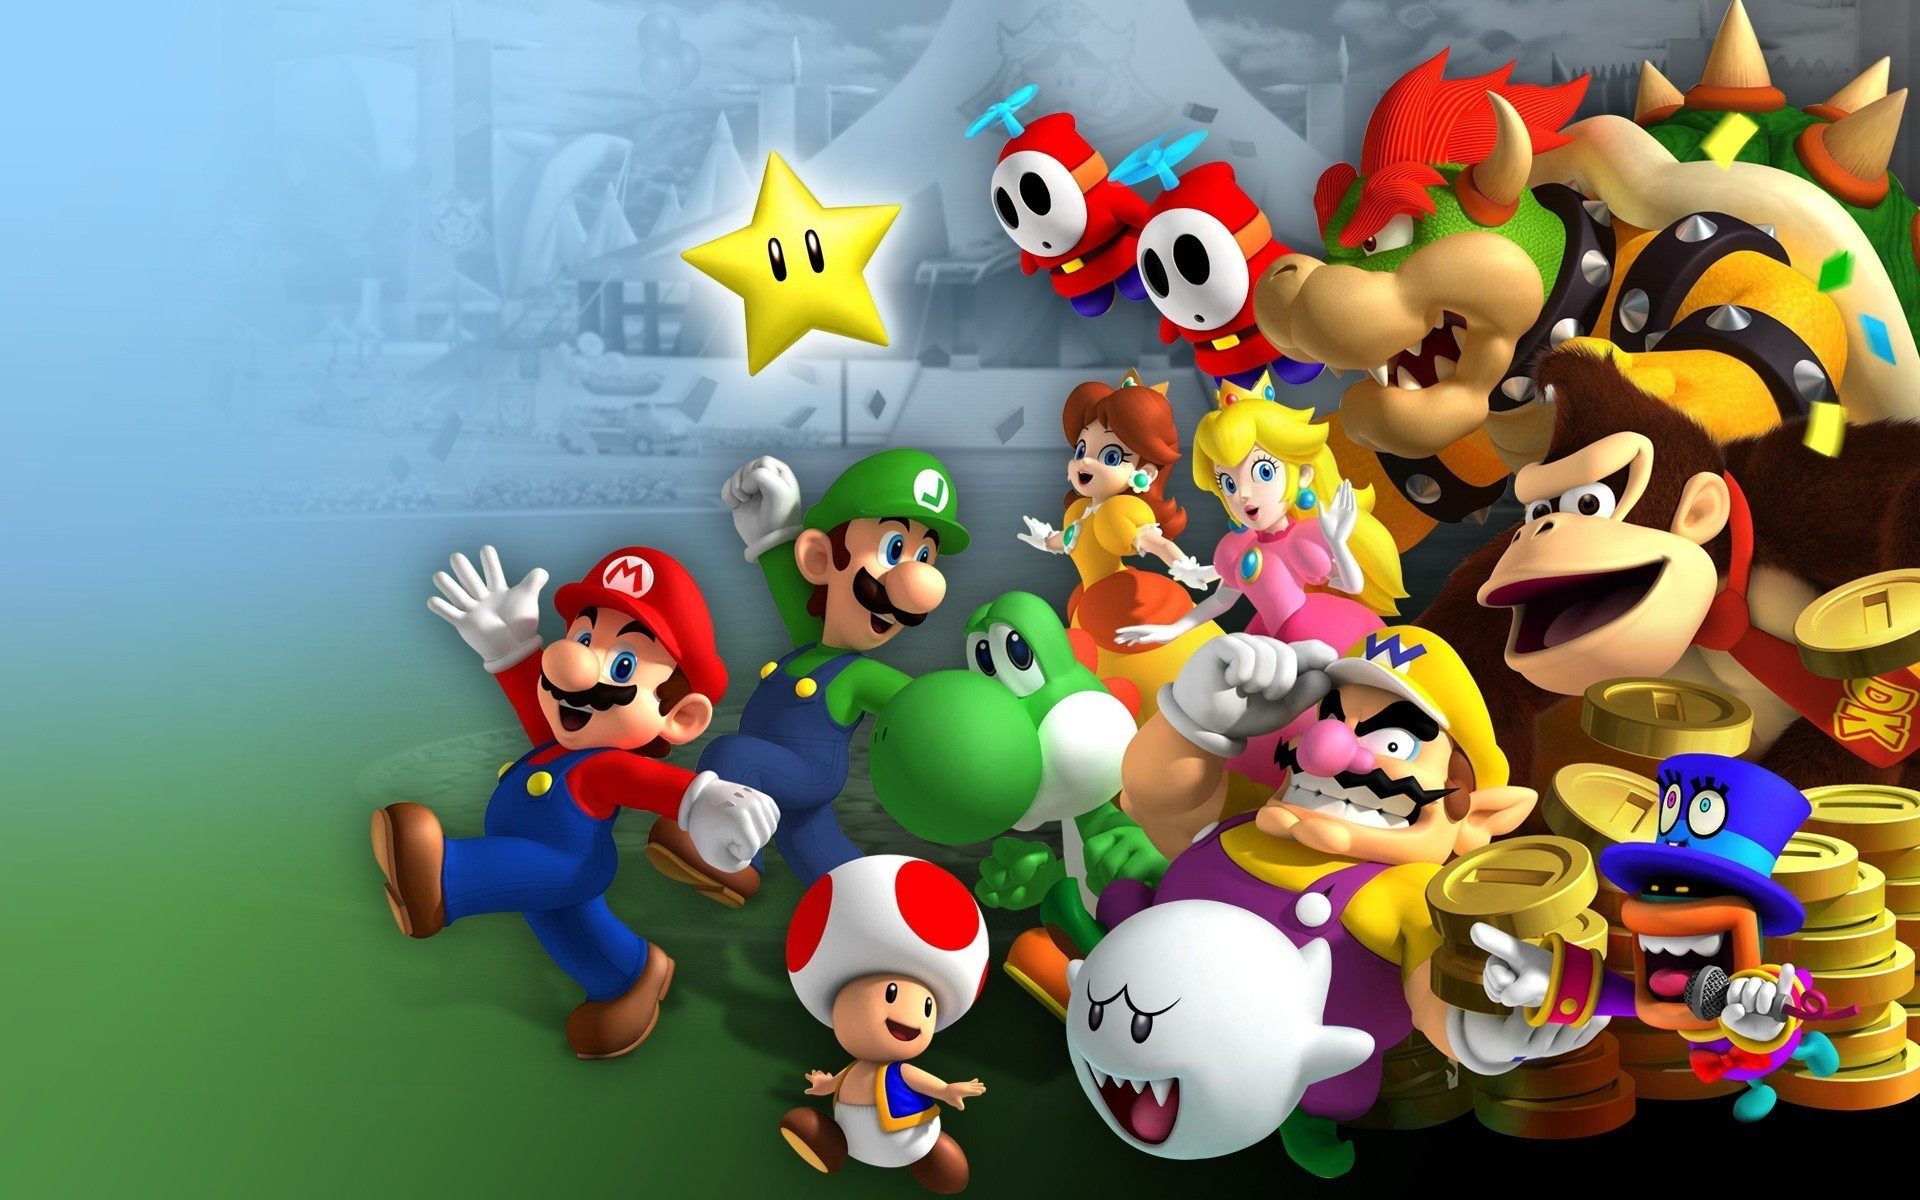 1920x1200 Mario Bros., Luigi, Princess Peach, Yoshi, Wario, Donkey Kong, Toad  (character), Video Games, Nintendo, Mario Kart 8 Wallpapers HD / Desktop  and Mobile ...